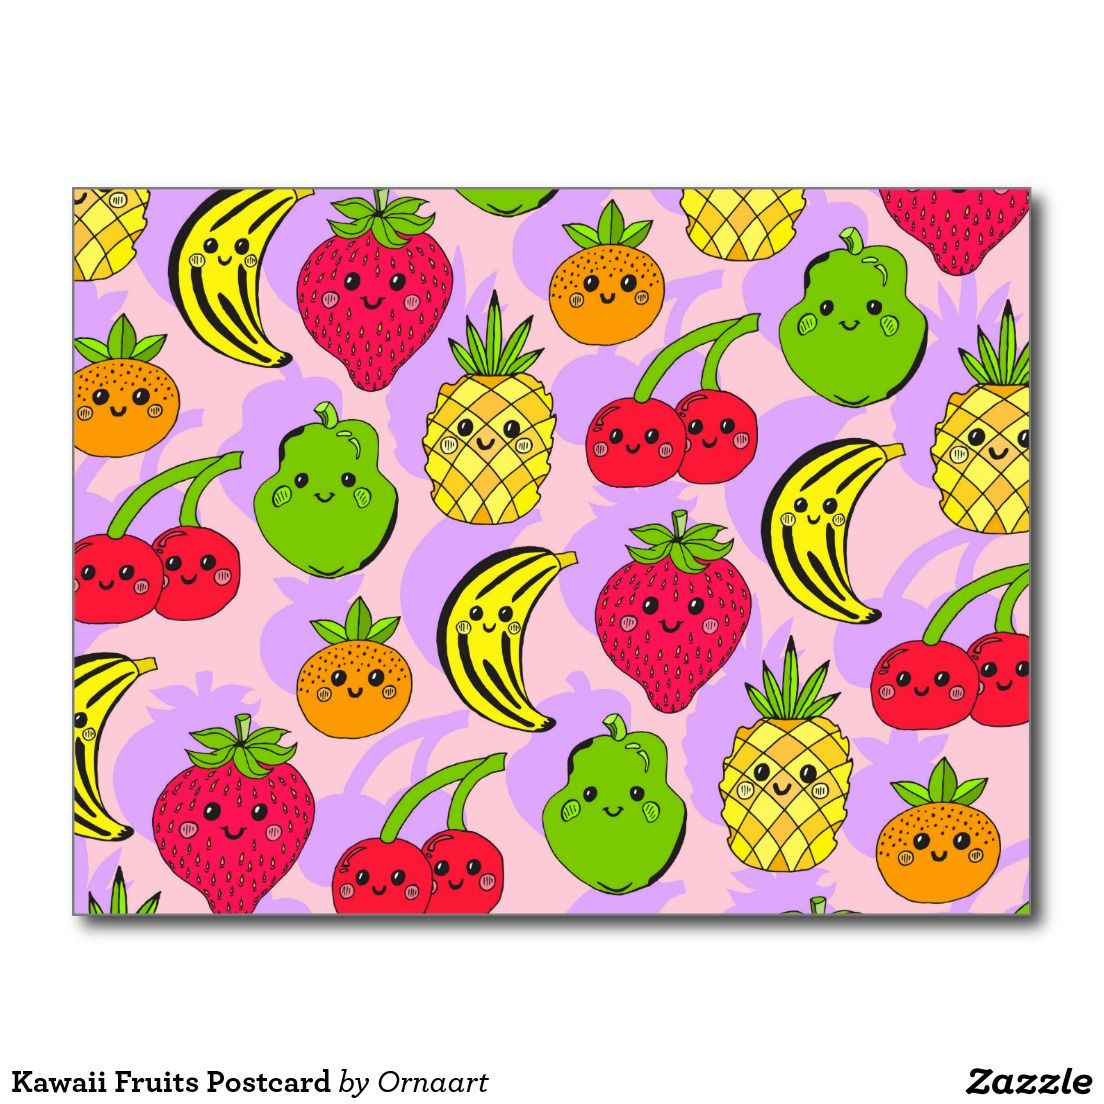 Kawaii Fruits Postcard